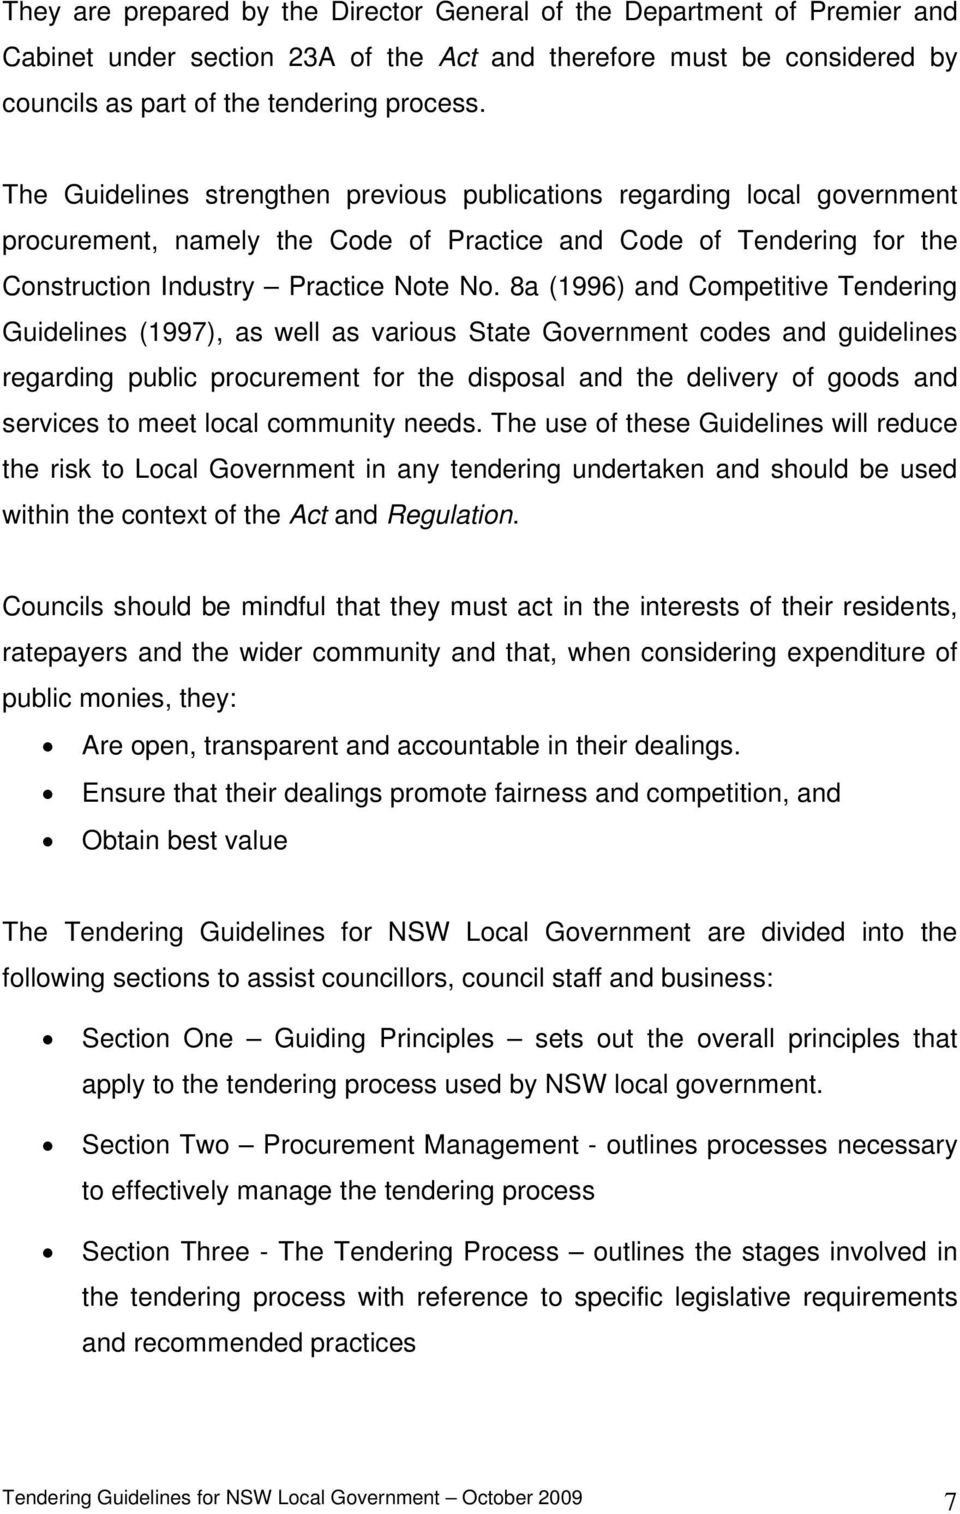 8a (1996) and Competitive Tendering Guidelines (1997), as well as various State Government codes and guidelines regarding public procurement for the disposal and the delivery of goods and services to